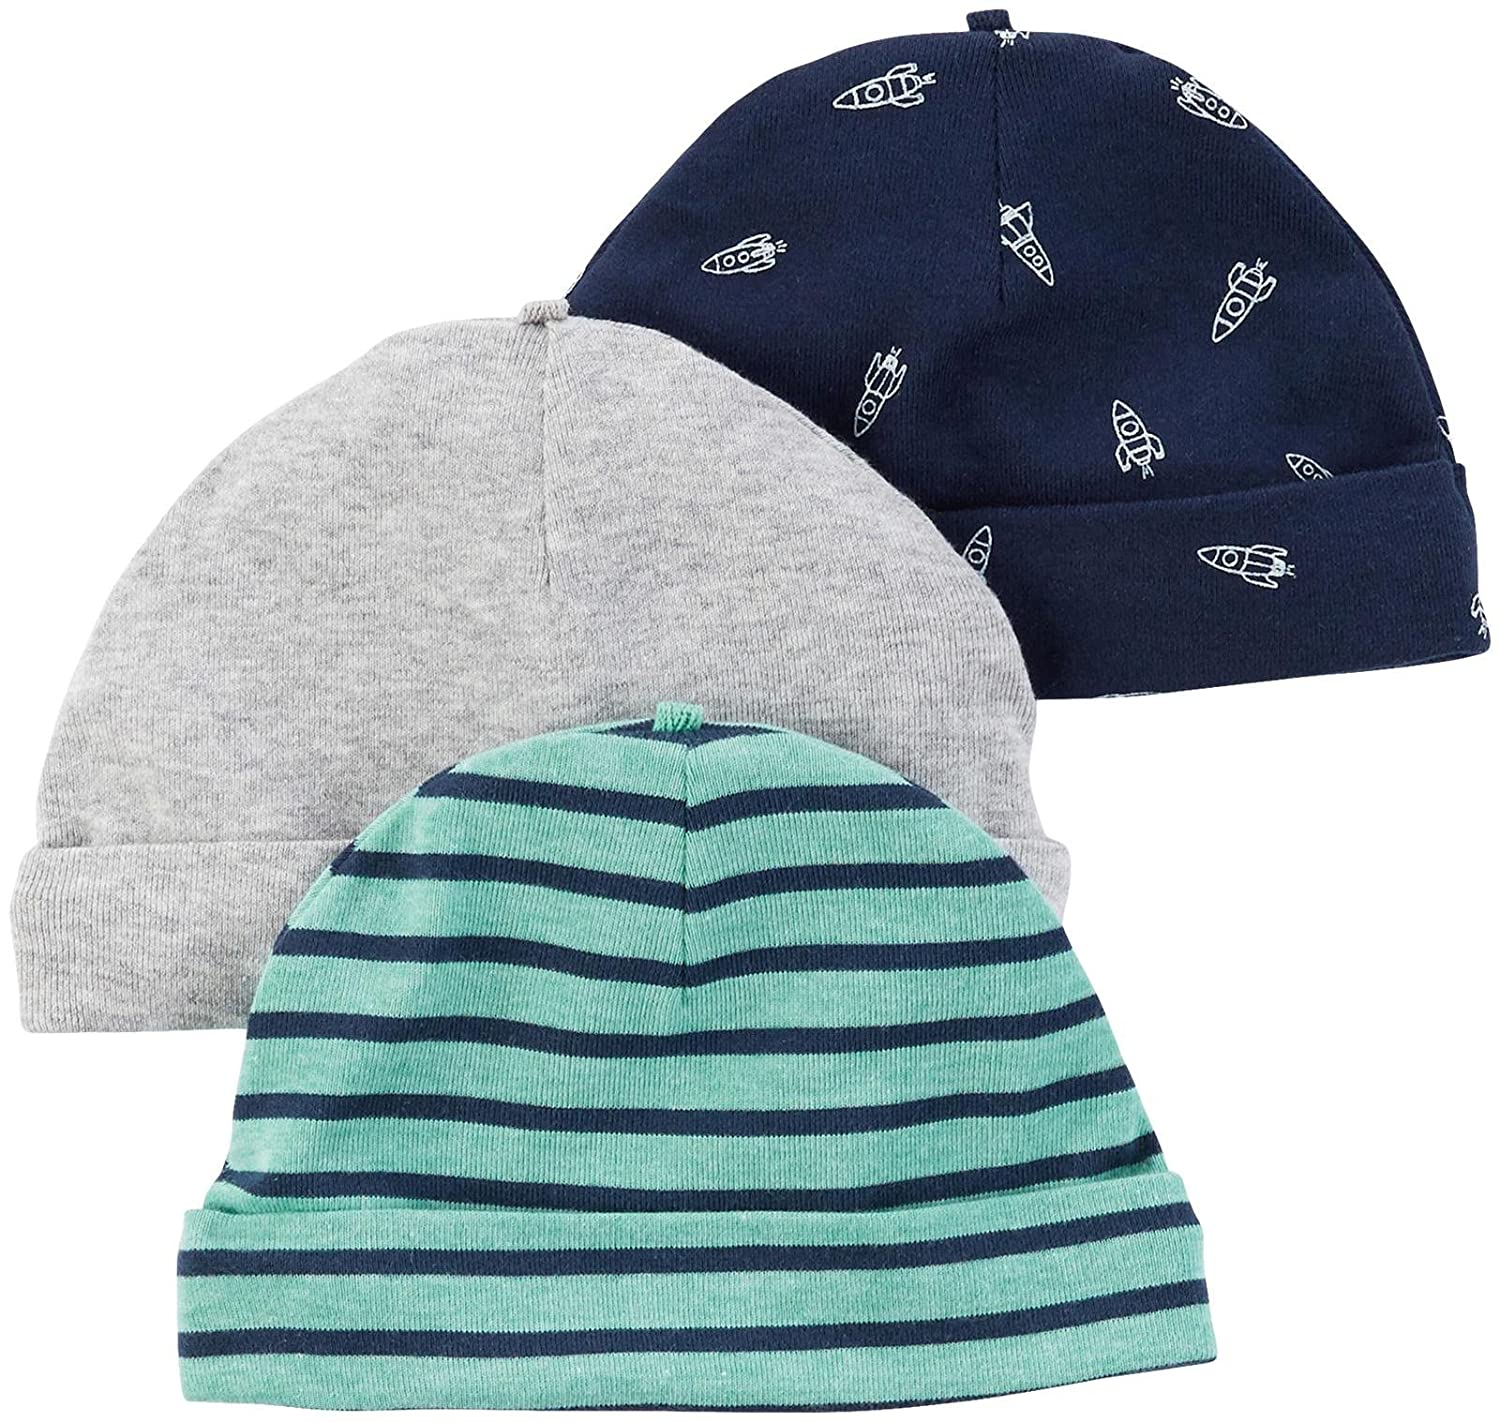 Carter's Baby Boys' Caps 126g543 Turquoise 0-3 Months Baby Carters